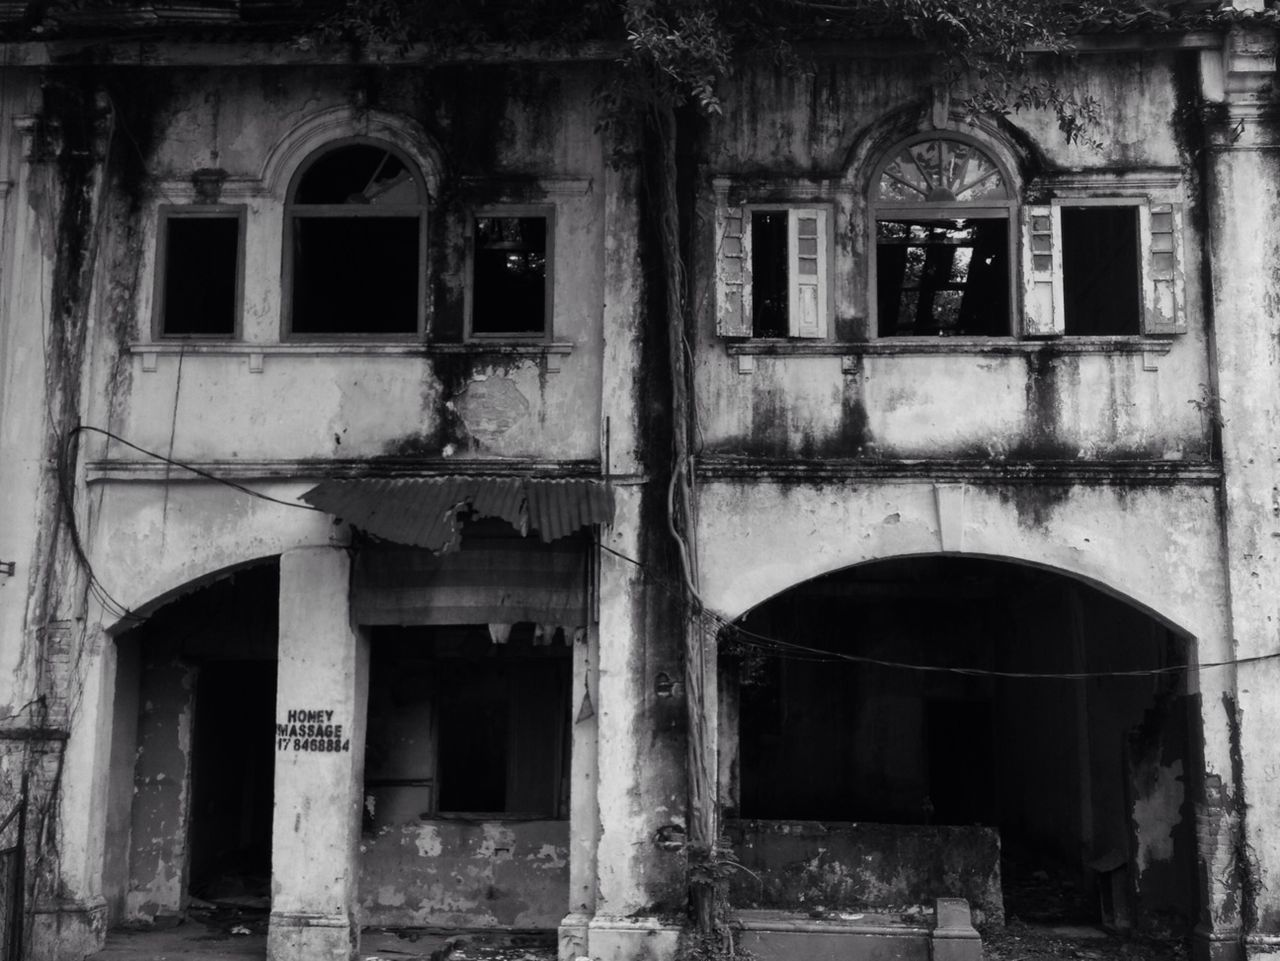 architecture, window, built structure, building exterior, old, abandoned, no people, damaged, day, outdoors